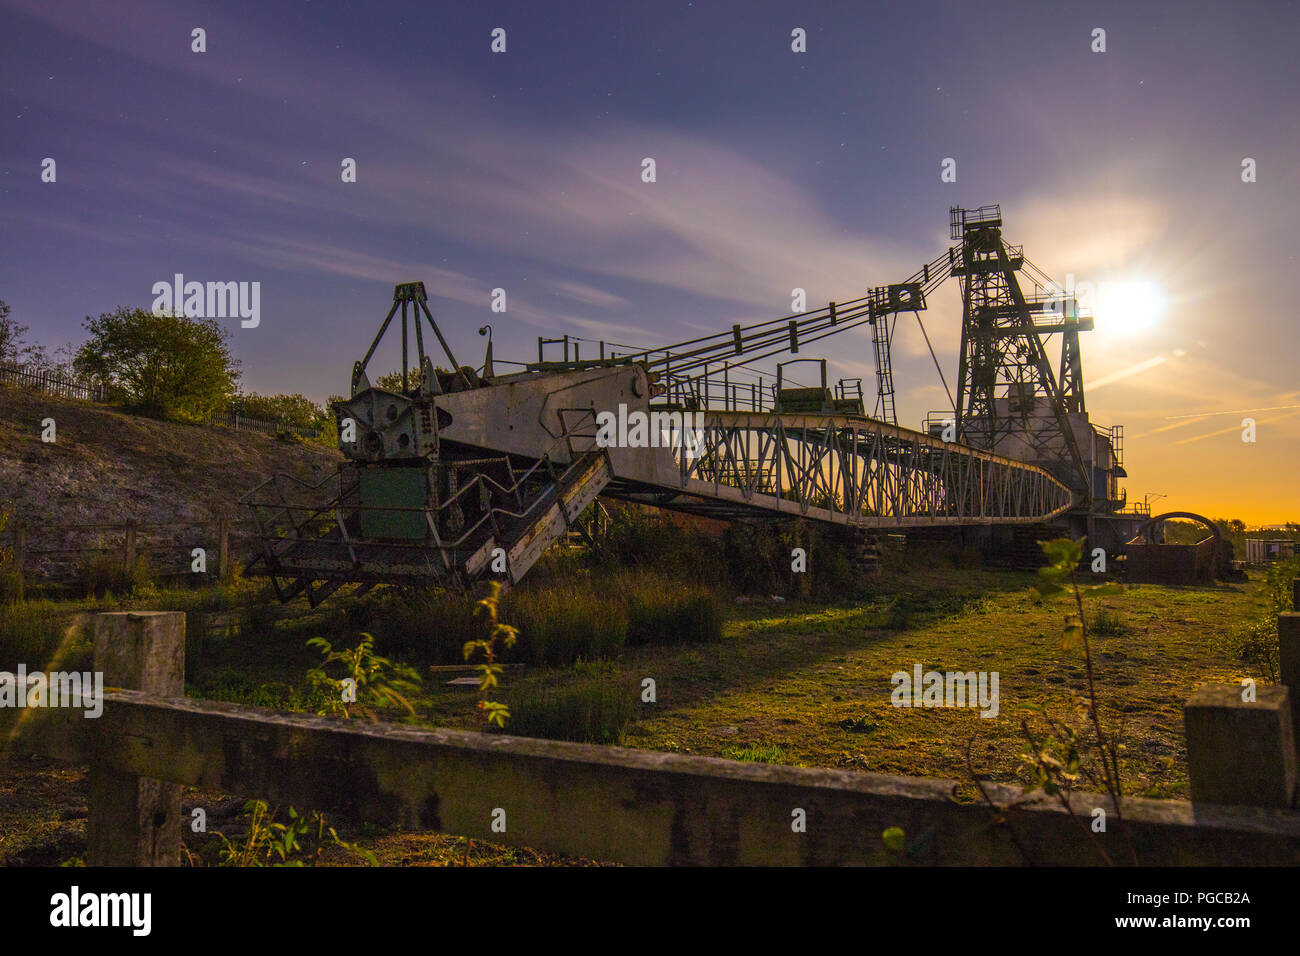 A Ruston Bucyrus Erie 1150 Walking Dragline at night at RSPB St Aidan's in West Yorkshire - Stock Image